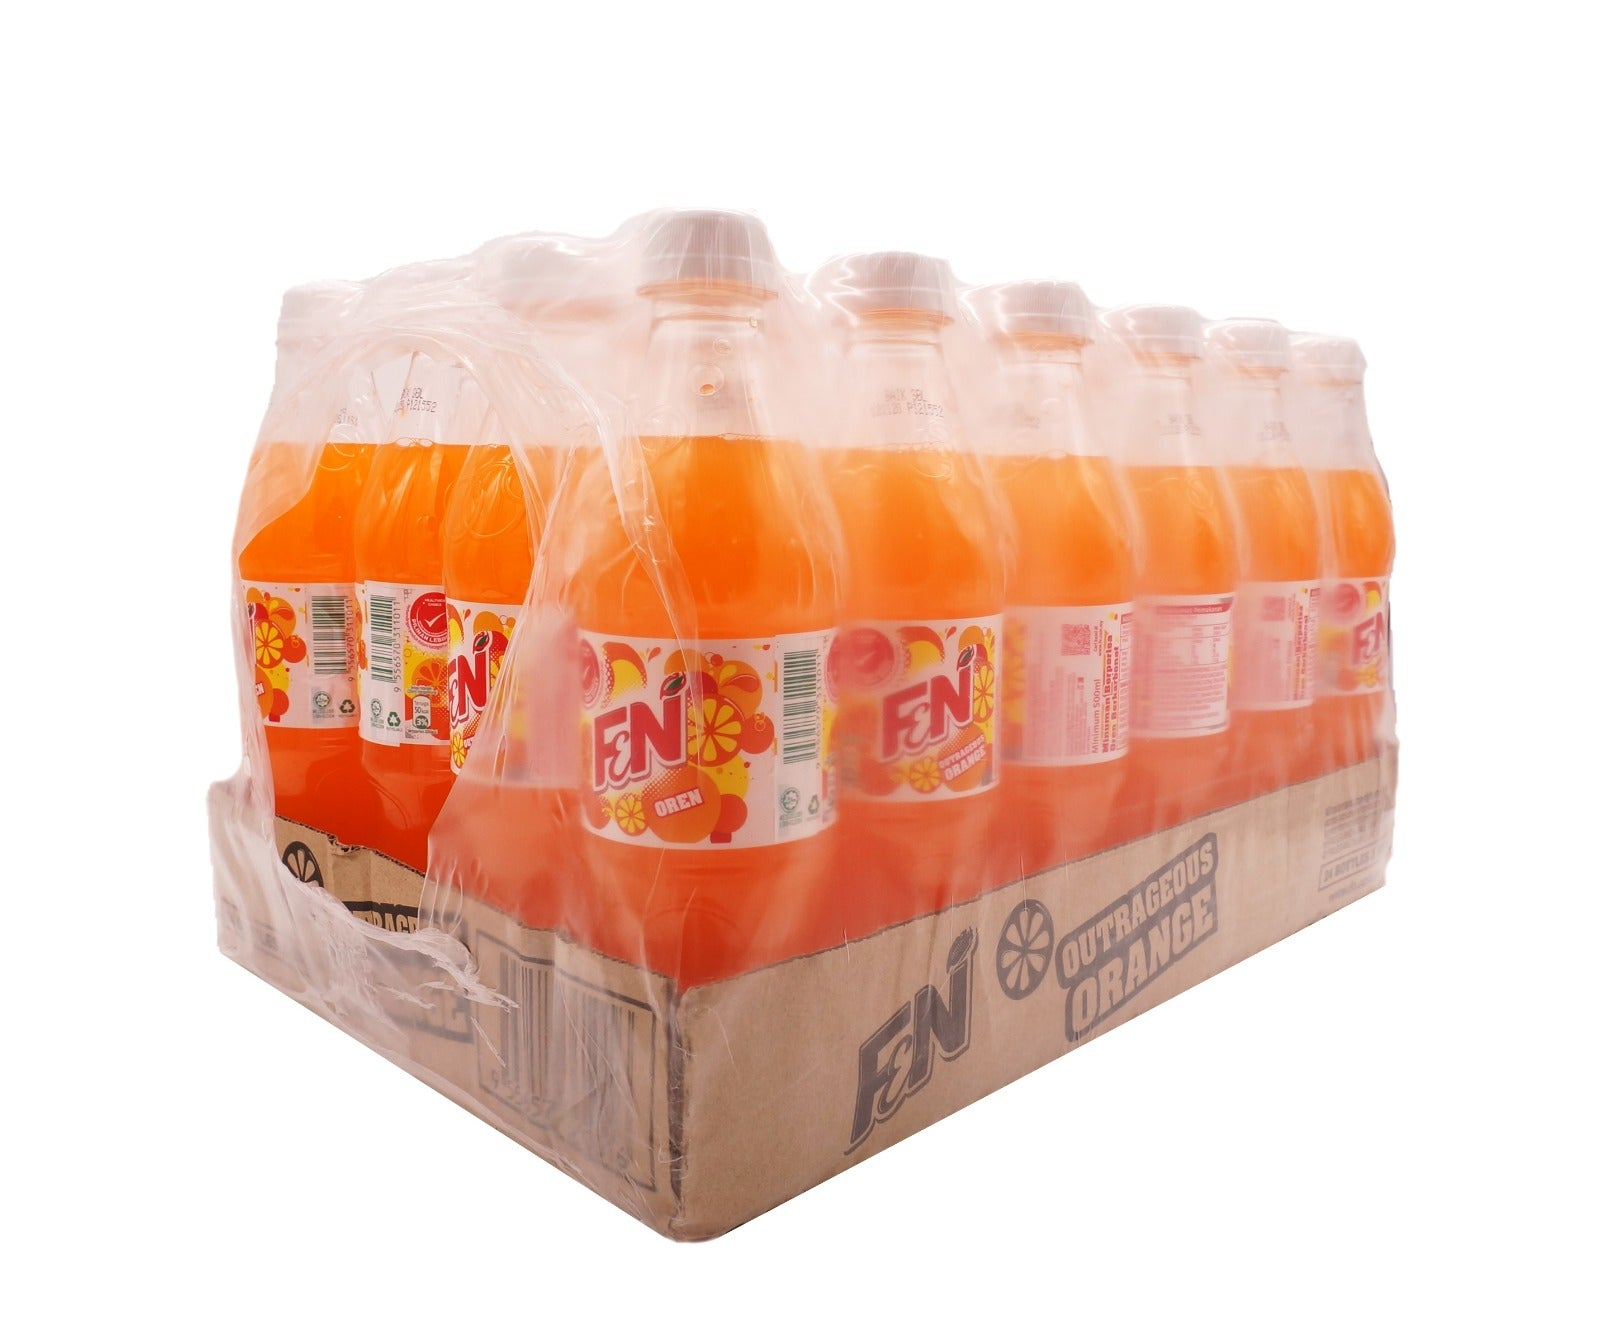 F&N Orange Bottle (24 x 500ml – Carton)